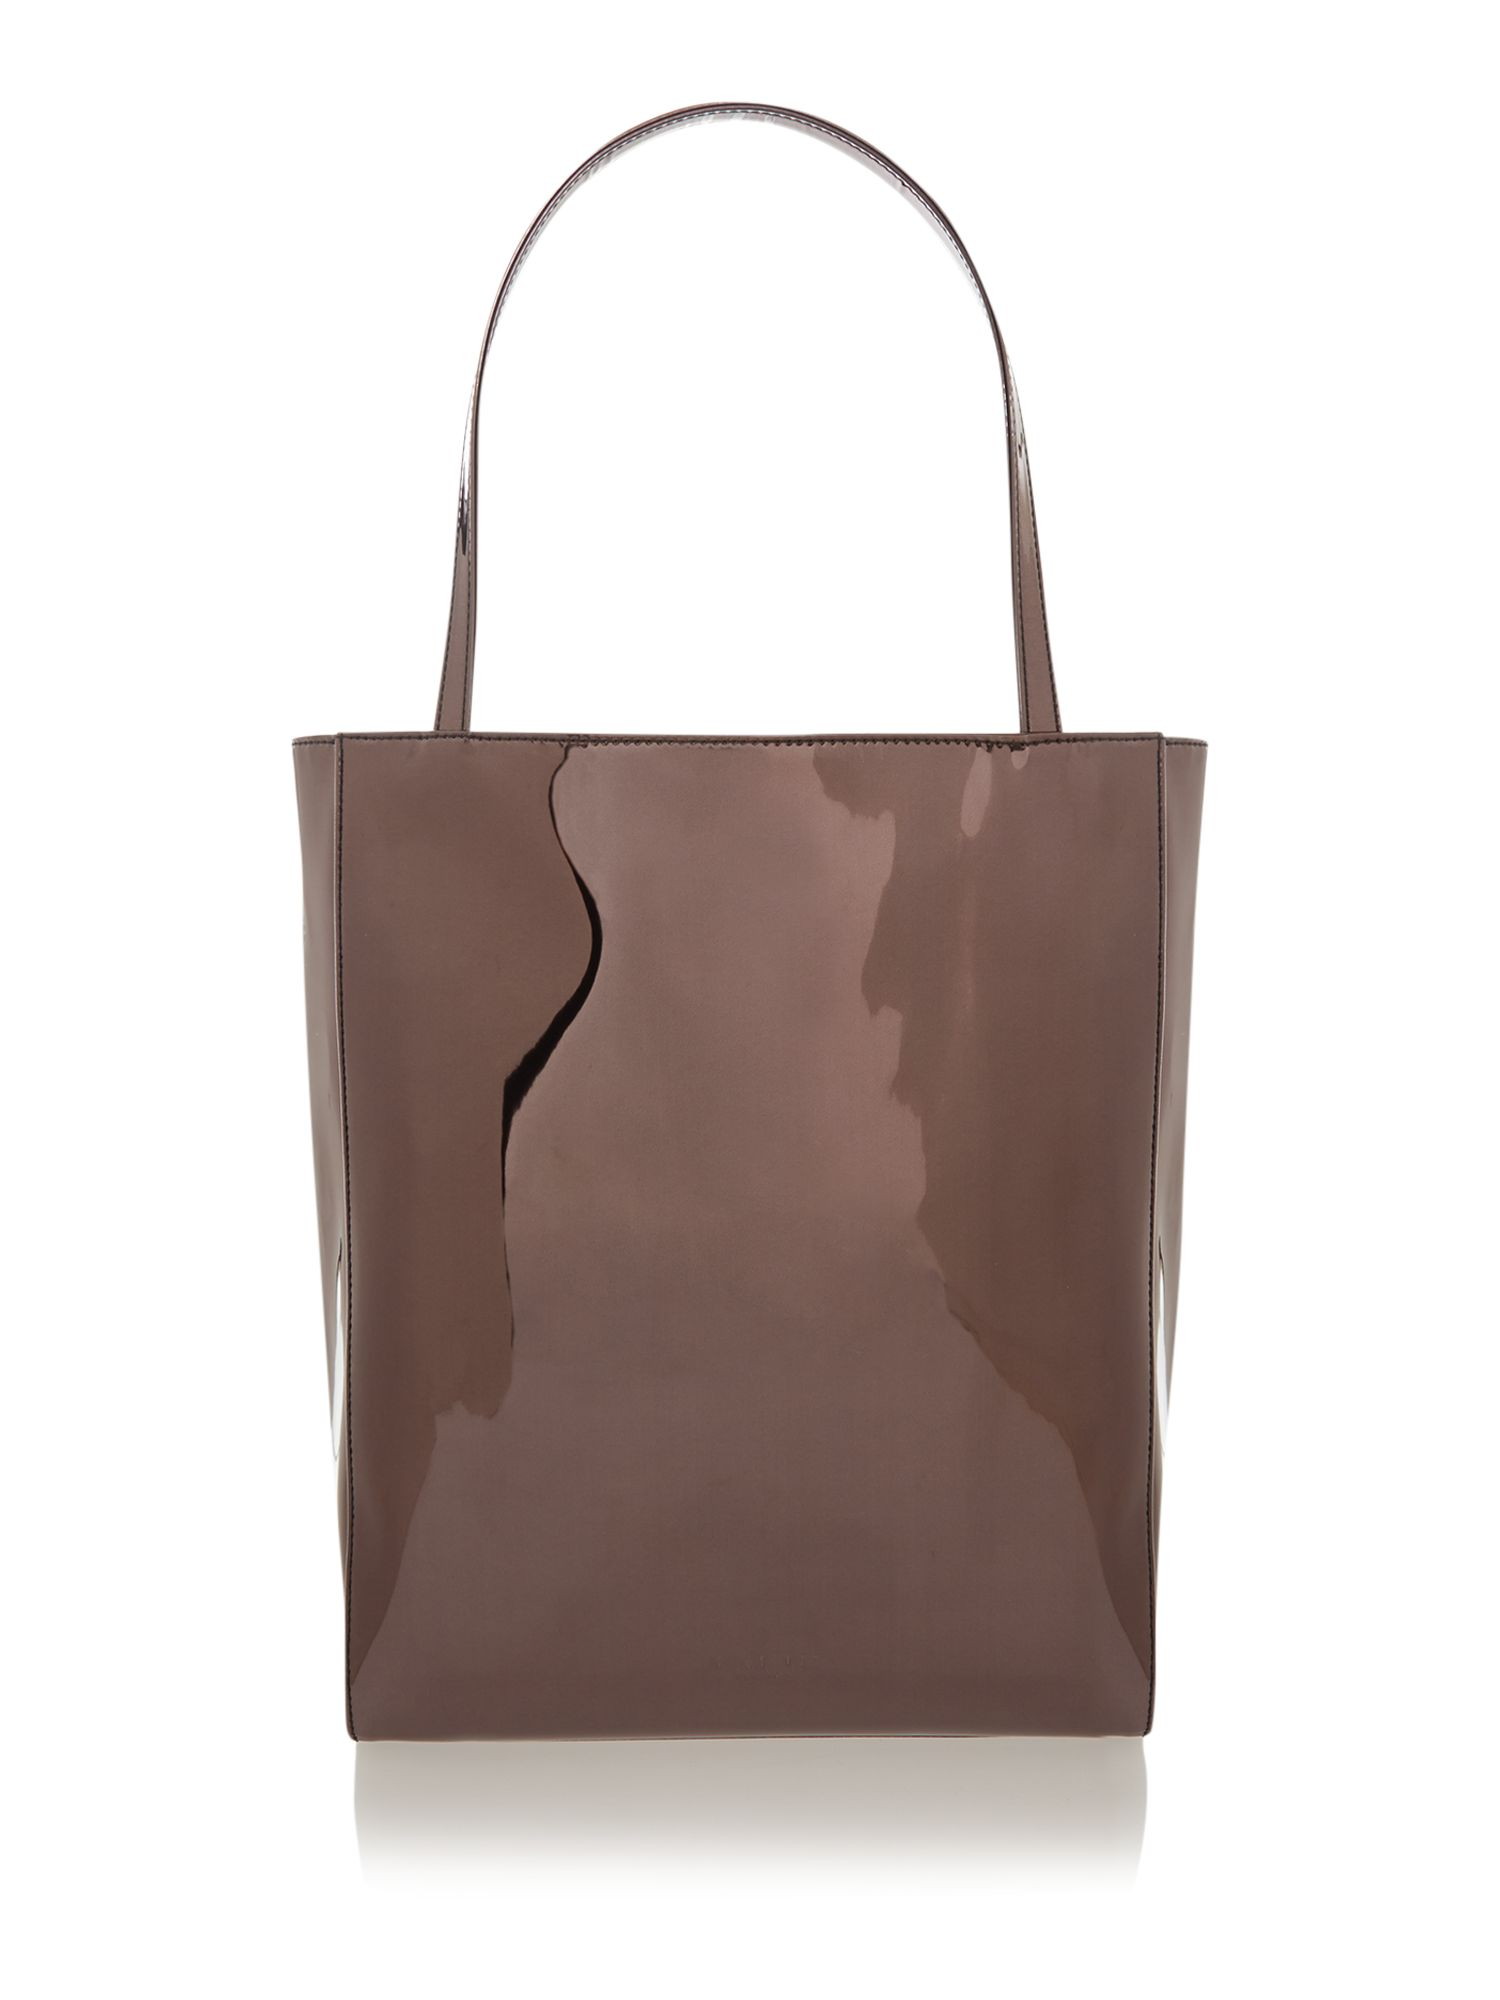 Balck large mirrored shopper bag